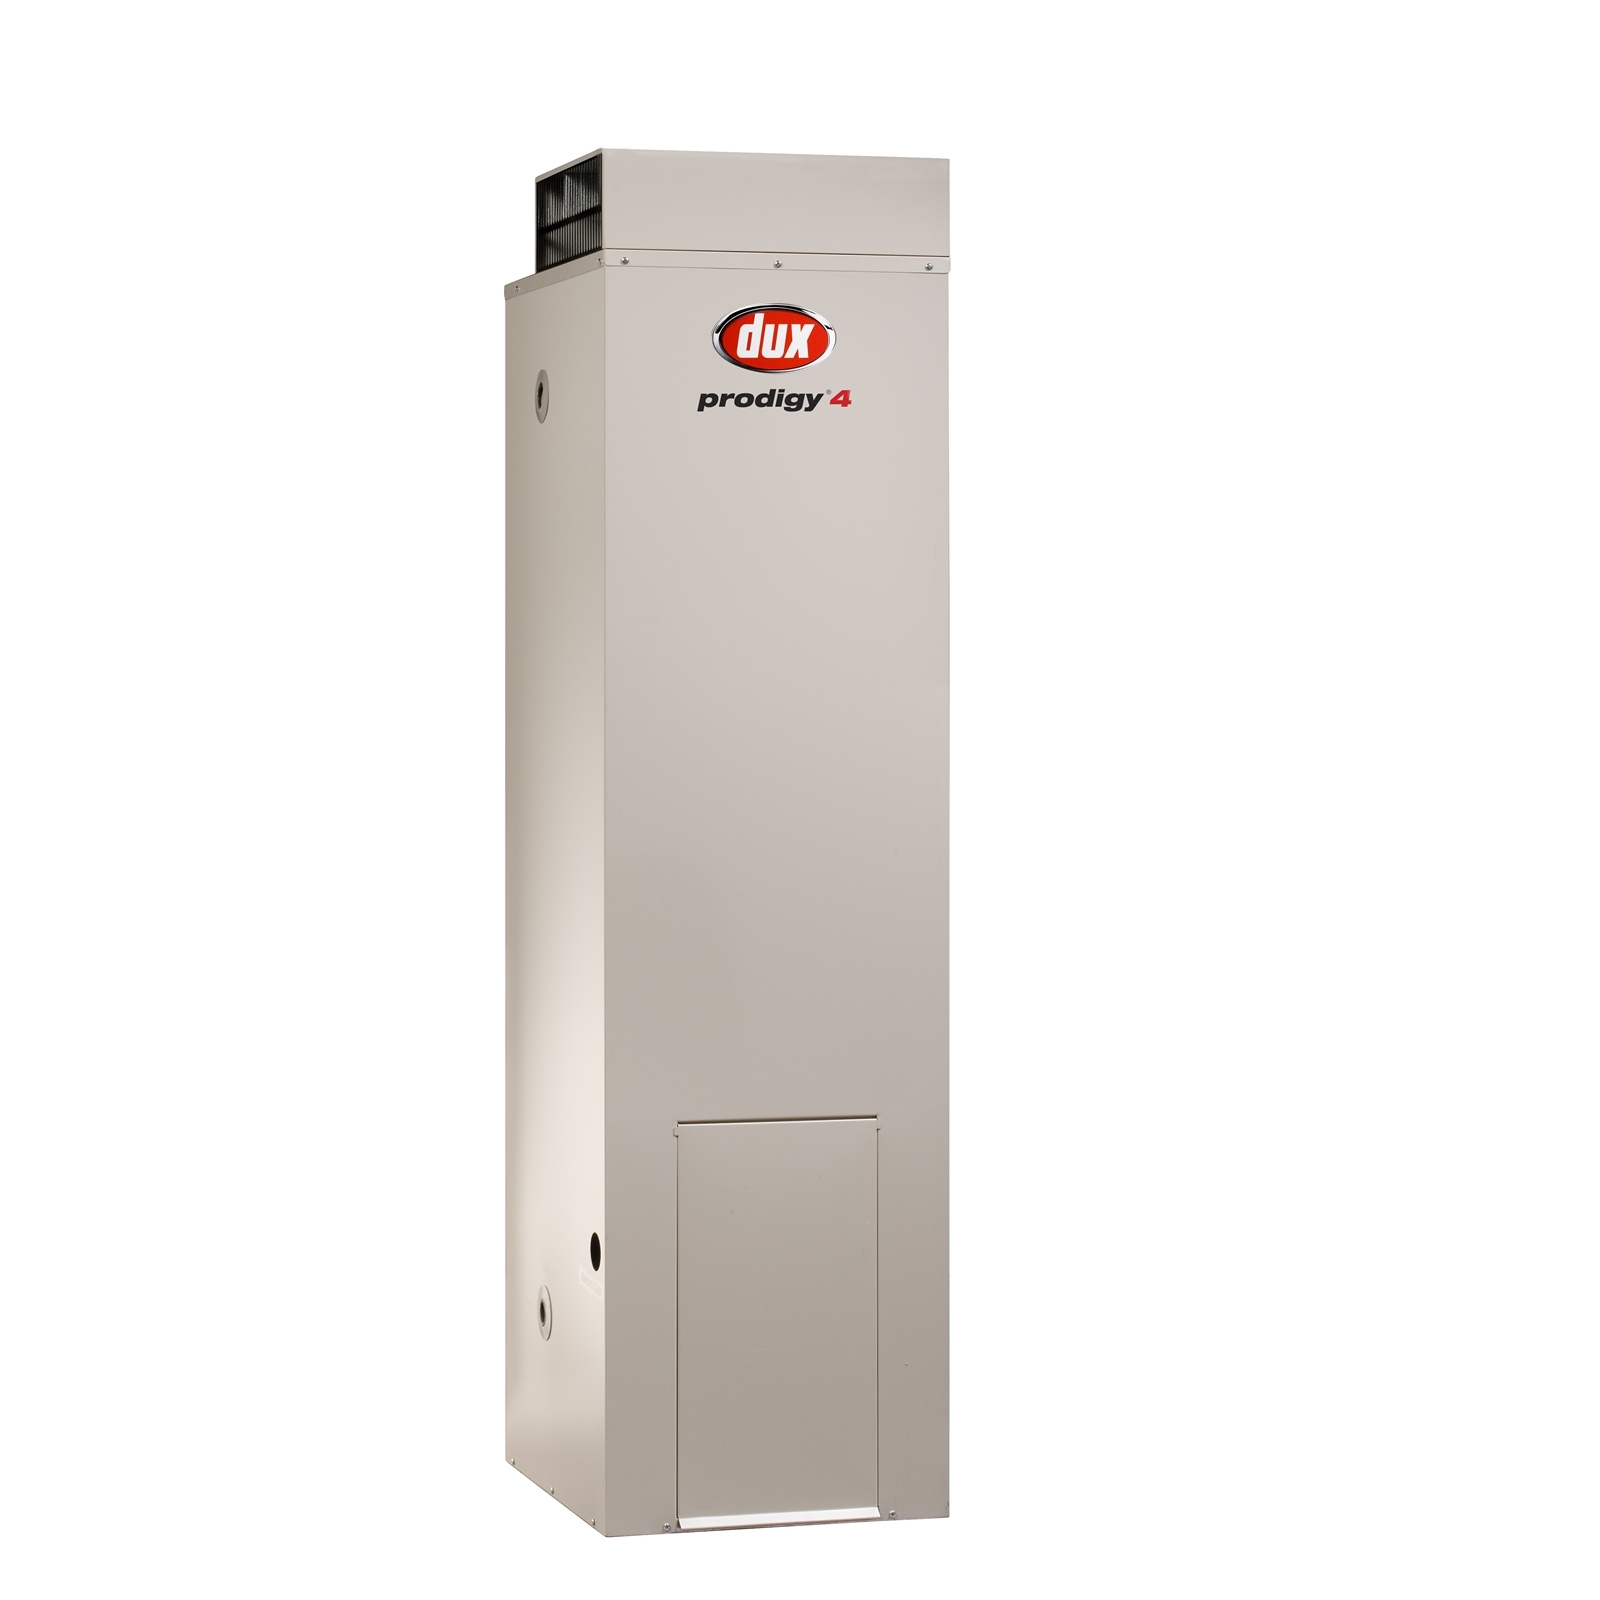 Dux 135L 4 Star Prodigy Water Heater - Natural Gas